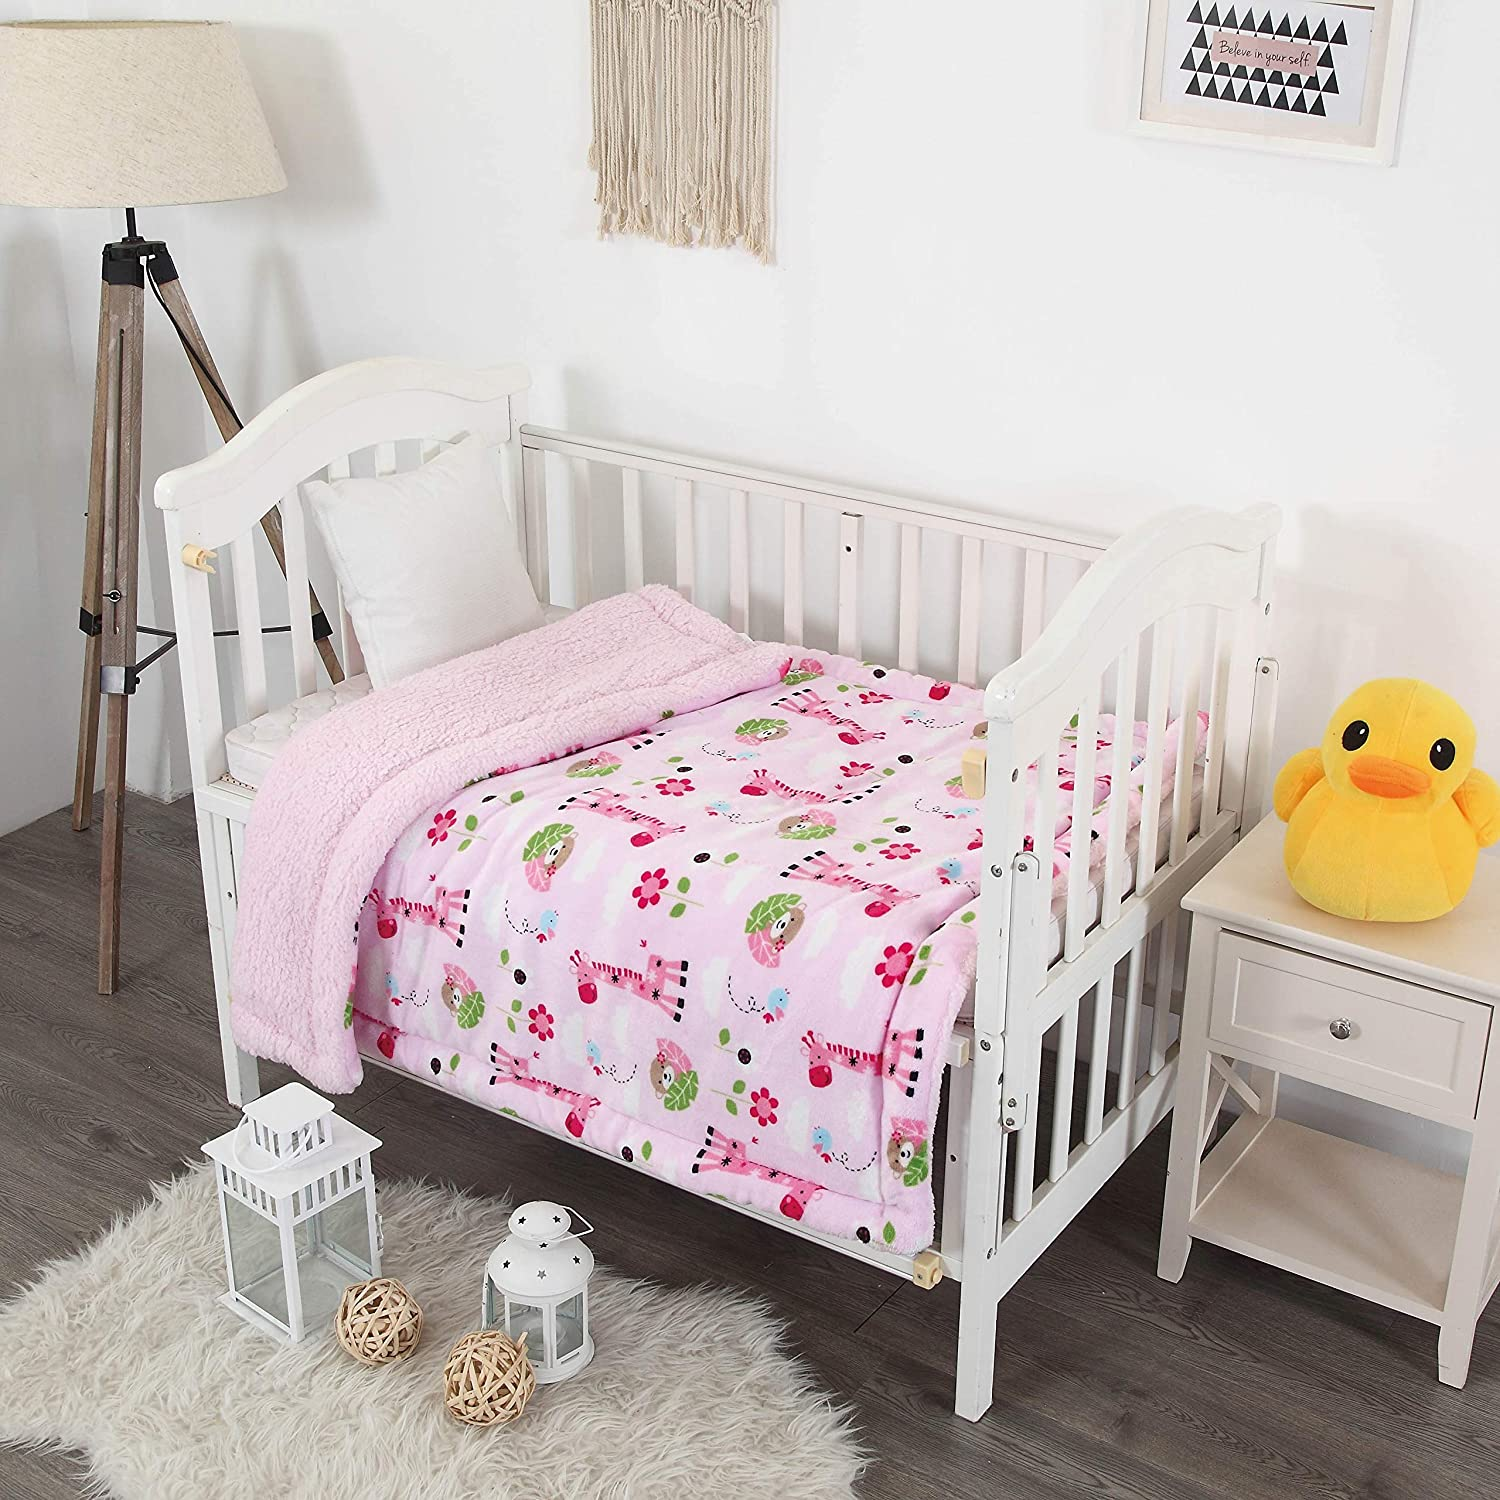 Sapphire Home Max 82% OFF Super Soft and Cozy Blanket Pink Bombing new work 40